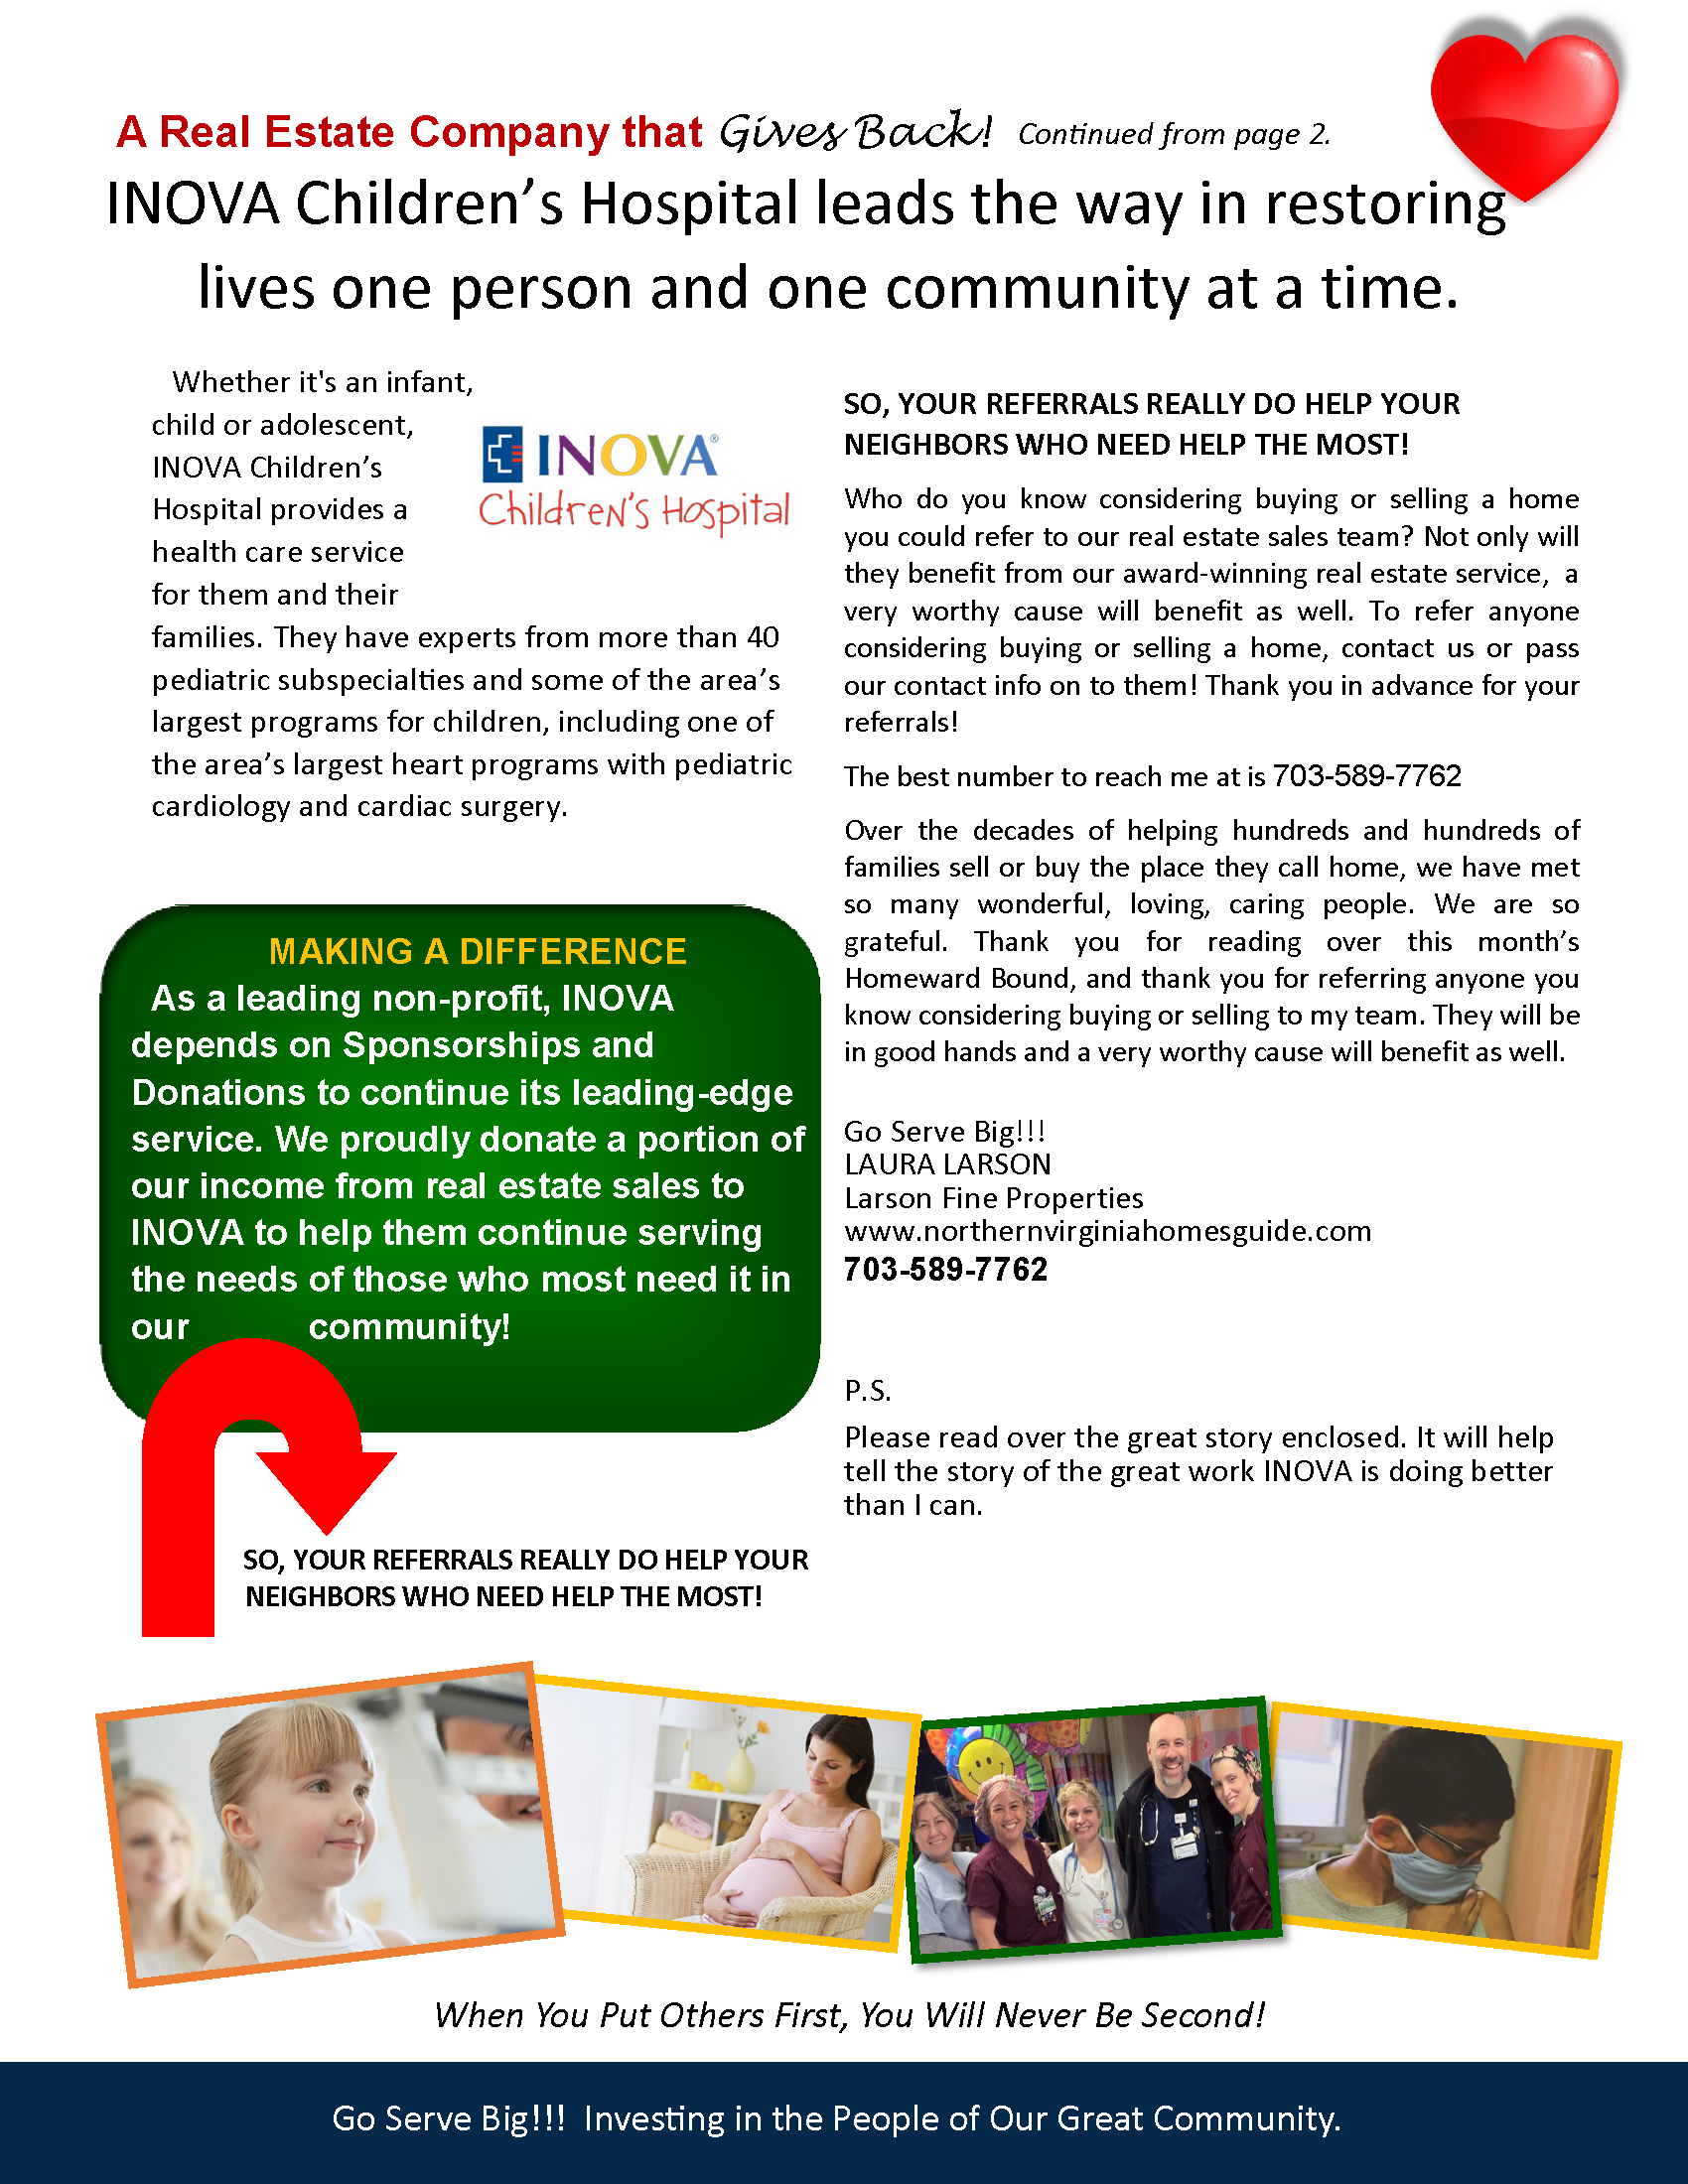 Homeward Bound Newsletter - March (FOR PRINT)_Page_3.png